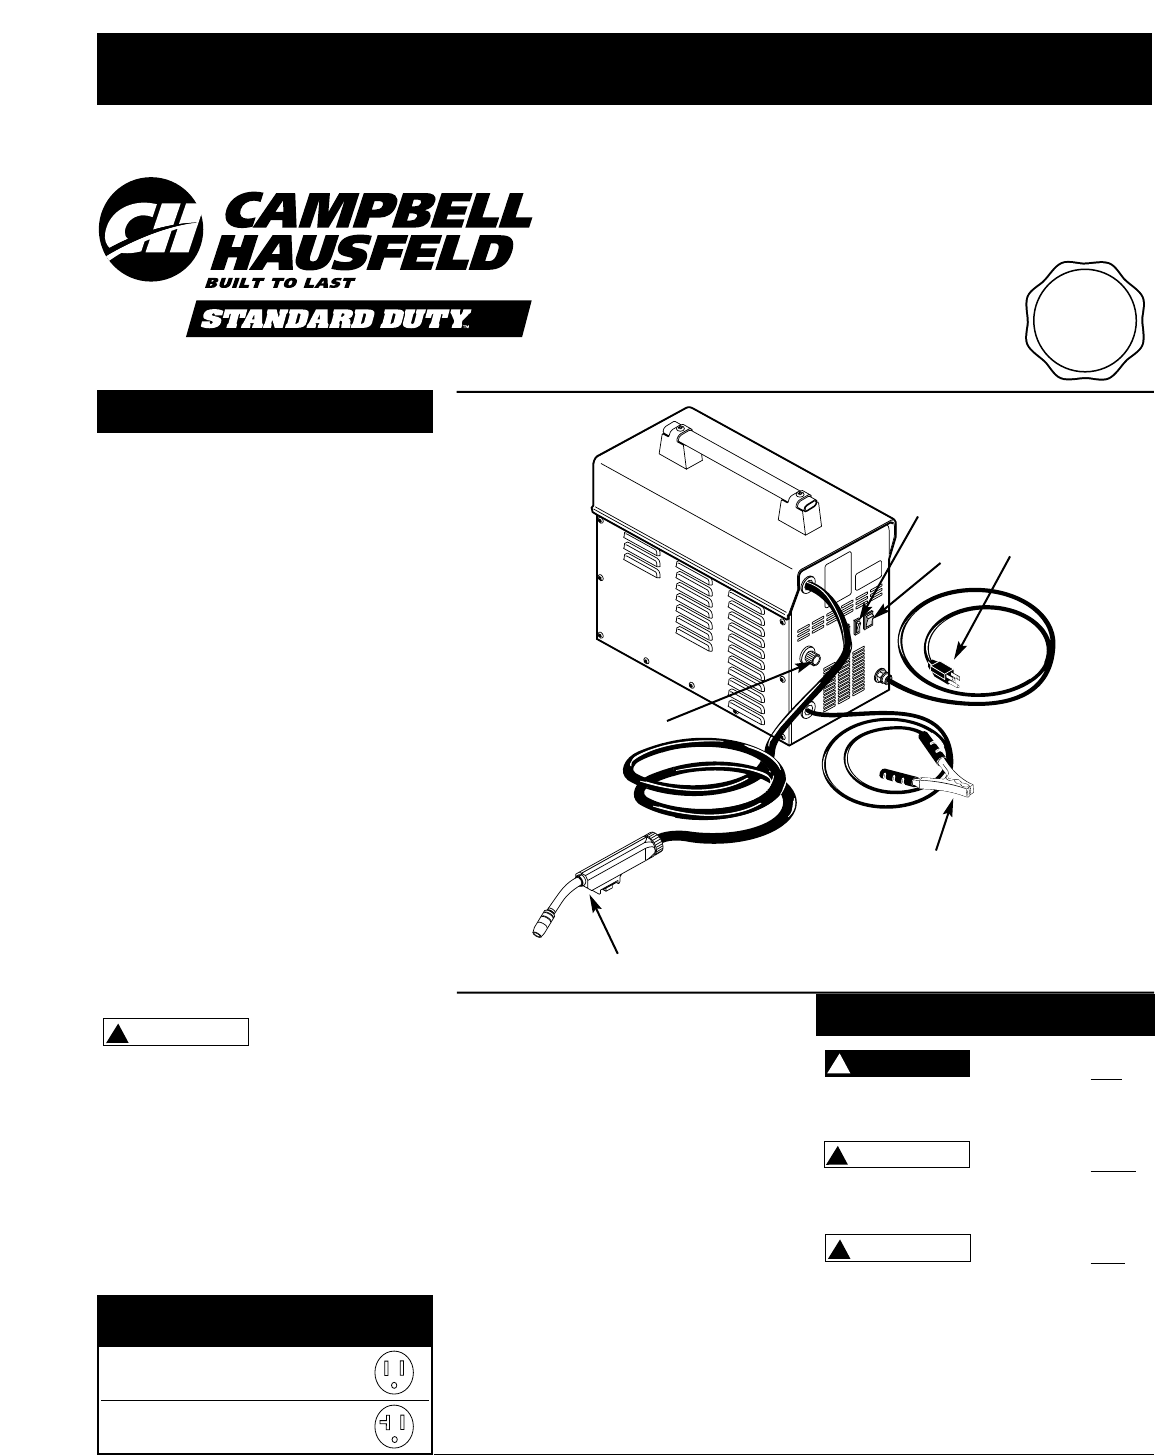 Campbell Hausfeld Welder Wf2010 User Guide Manualsonline Com Campbell  Hausfeld Mig Welder 140 Campbell Hausfeld Wire Feed Welder Diagram